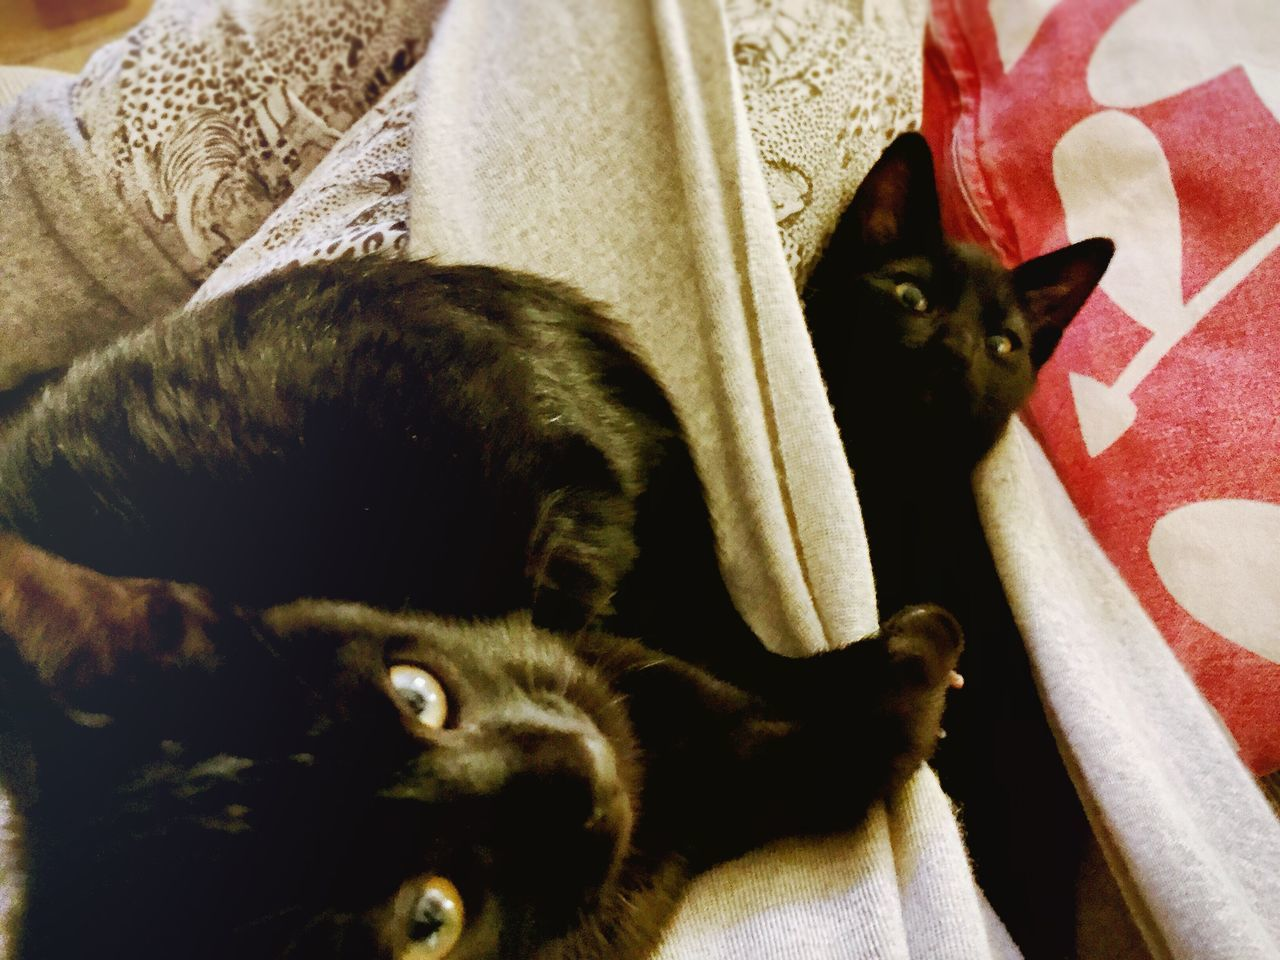 Twins Demoncat Kitten BLackCat Hug